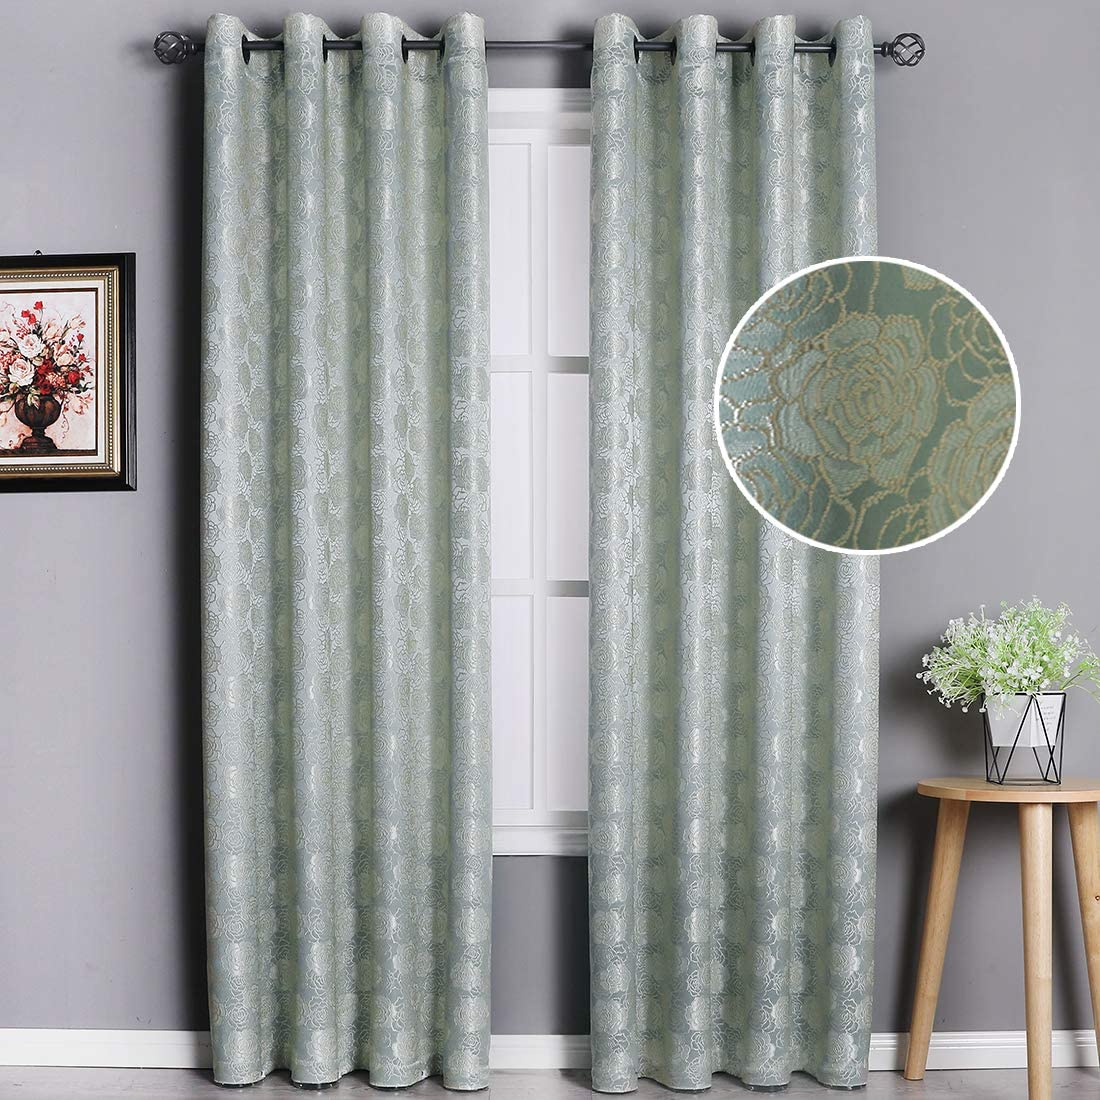 HEJEME Jacquard Curtains 84 Inch Length Rose Embroidered Drapes, 2 Panels Semi-Blackout Curtain for Bedroom and Living Room Sage